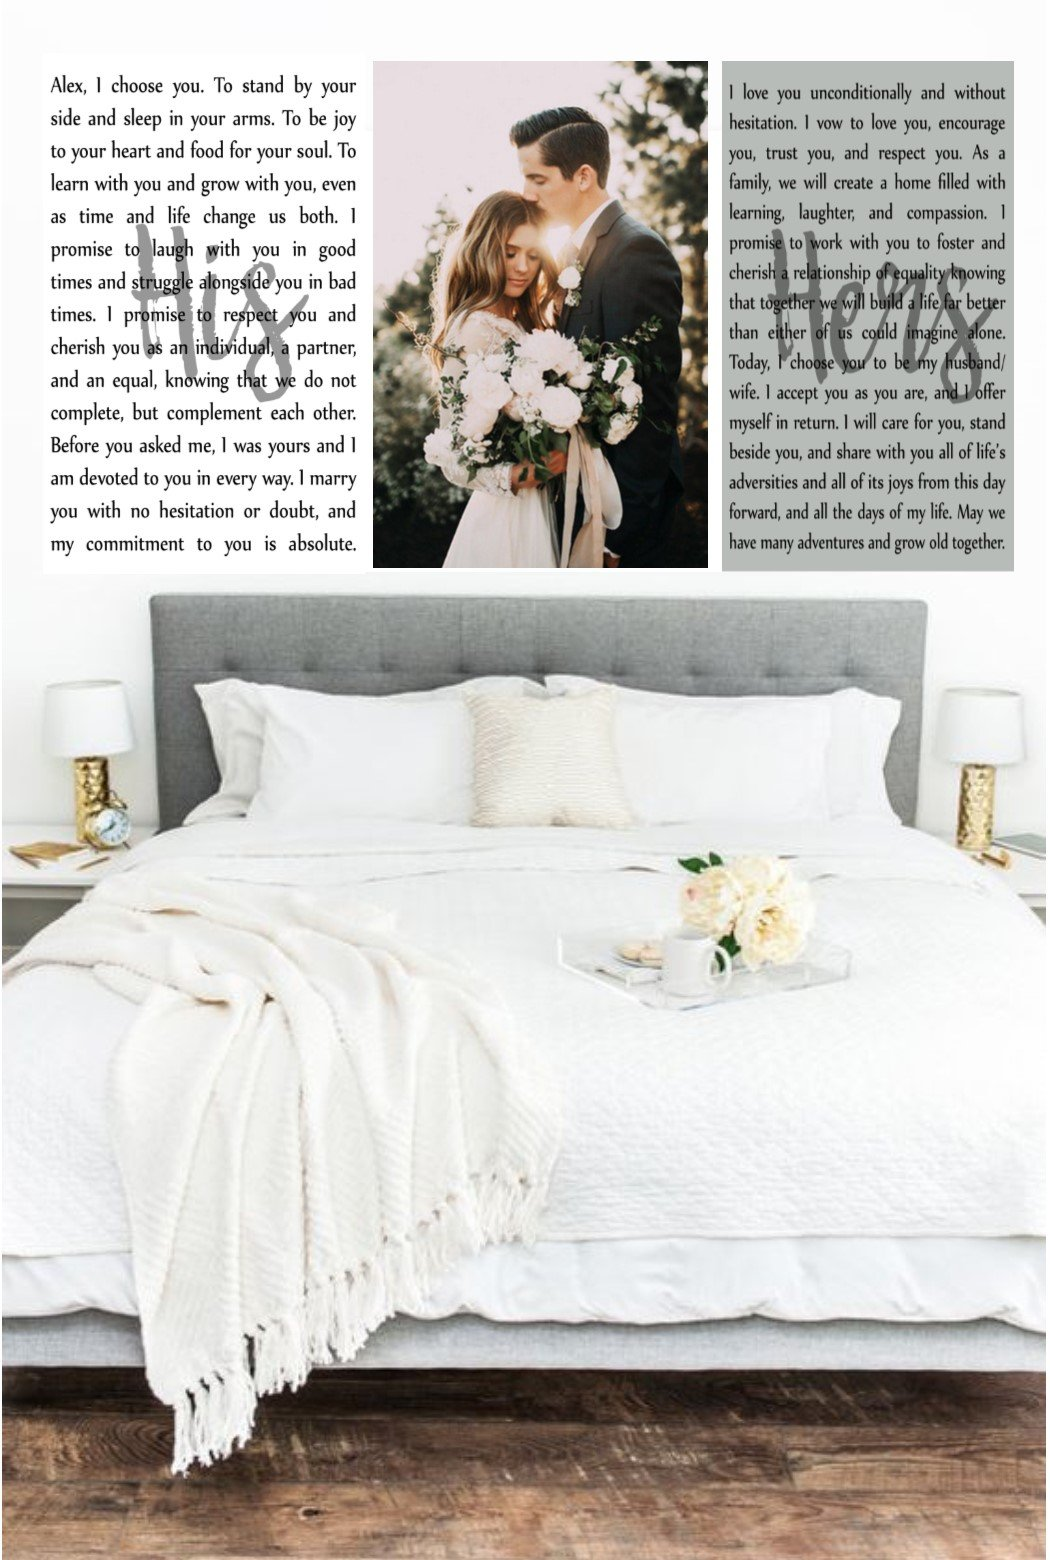 Wedding Vows Art, Set of 3 Canvas Prints, Custom Canvas Prints, Wedding Vows Photo, Wedding Keepsake, Anniversary Canvas, Canvas Over Bed